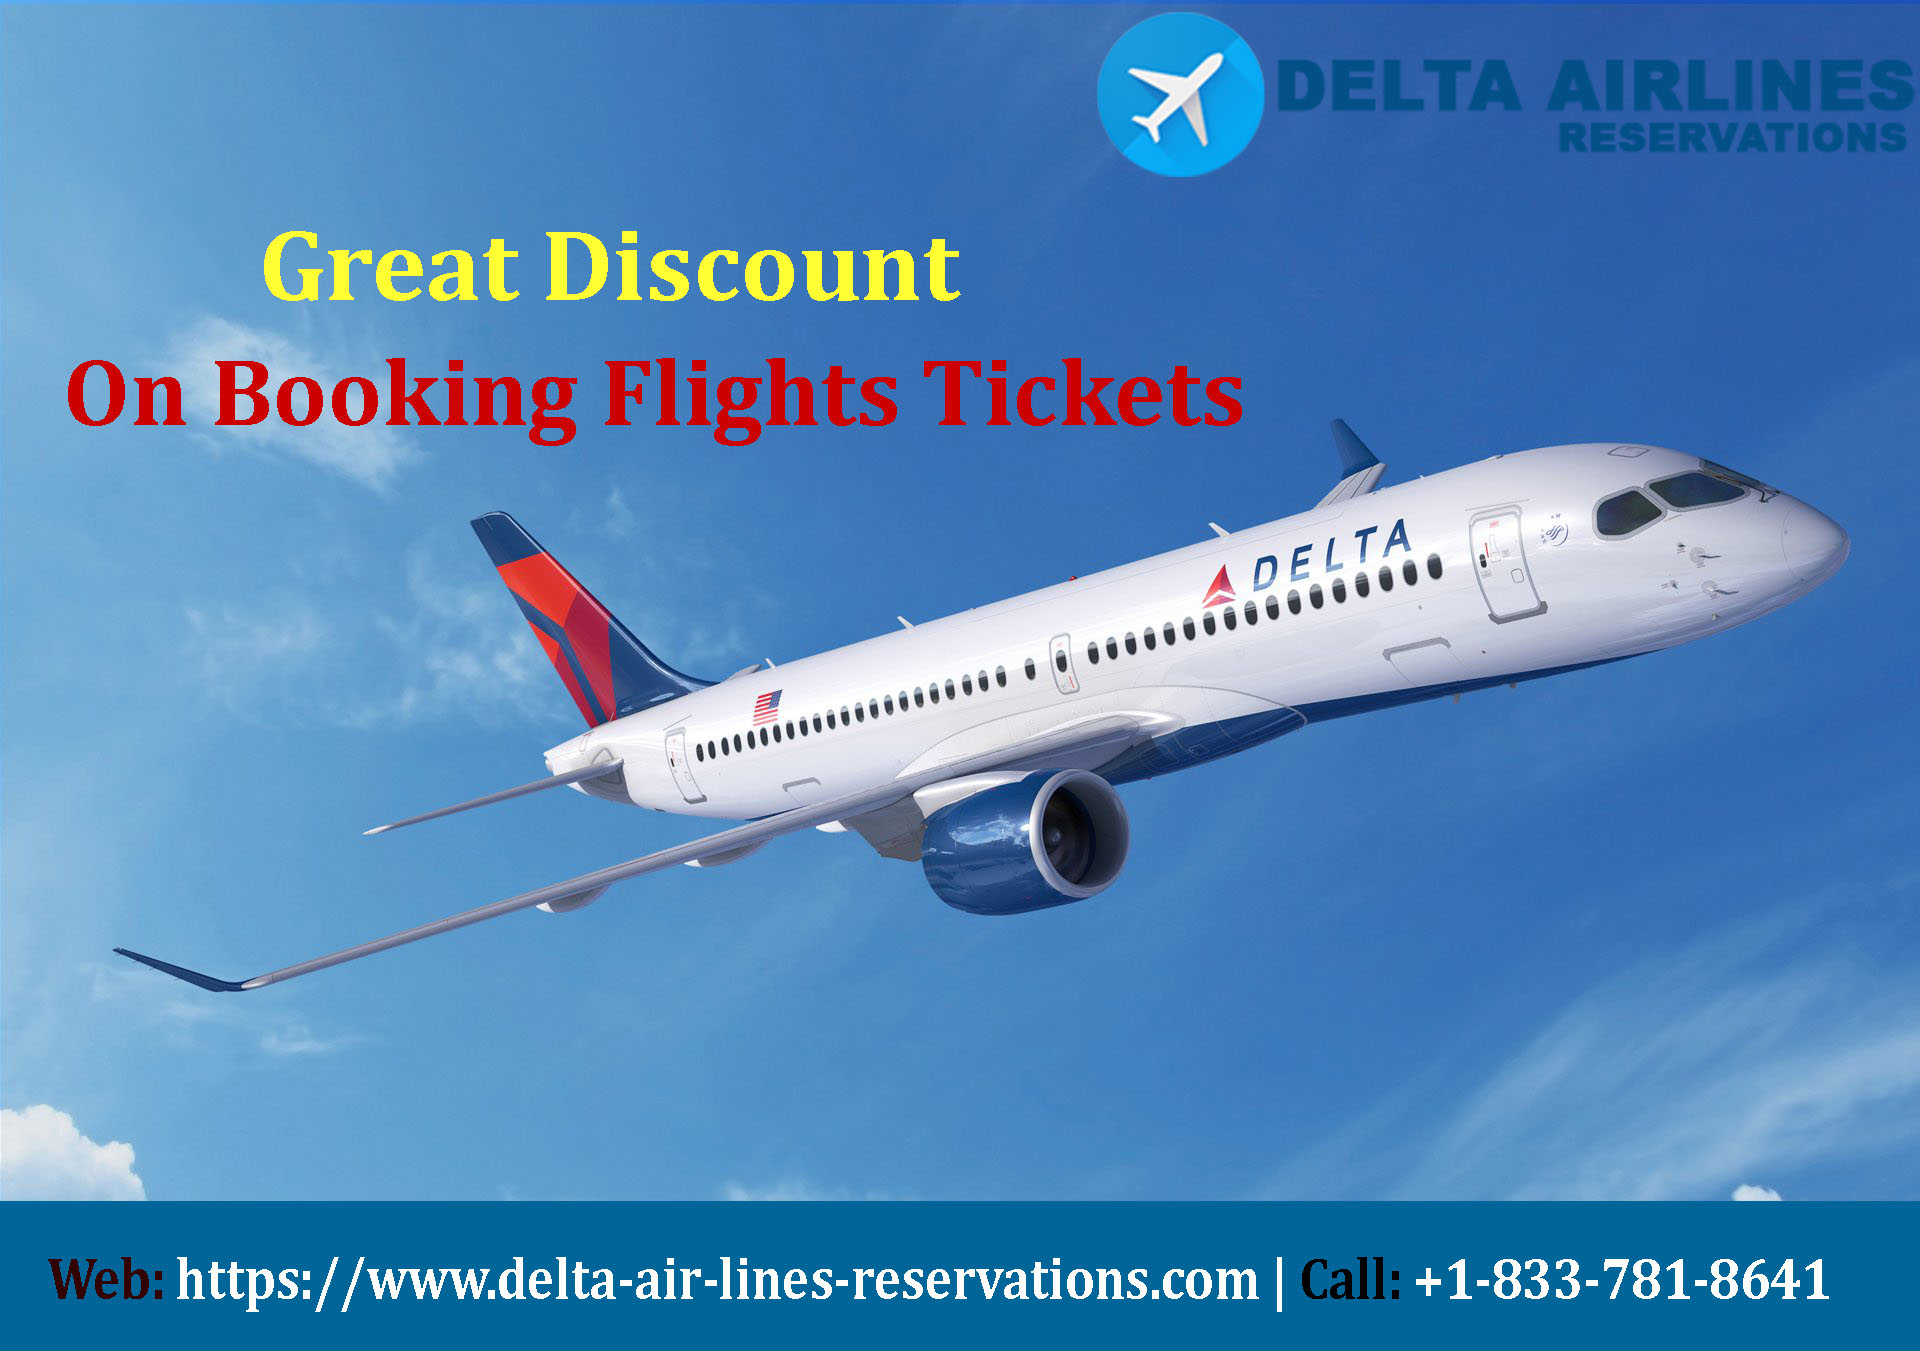 Delta Airlines Reservations | 1-833-781-8641 Official Site